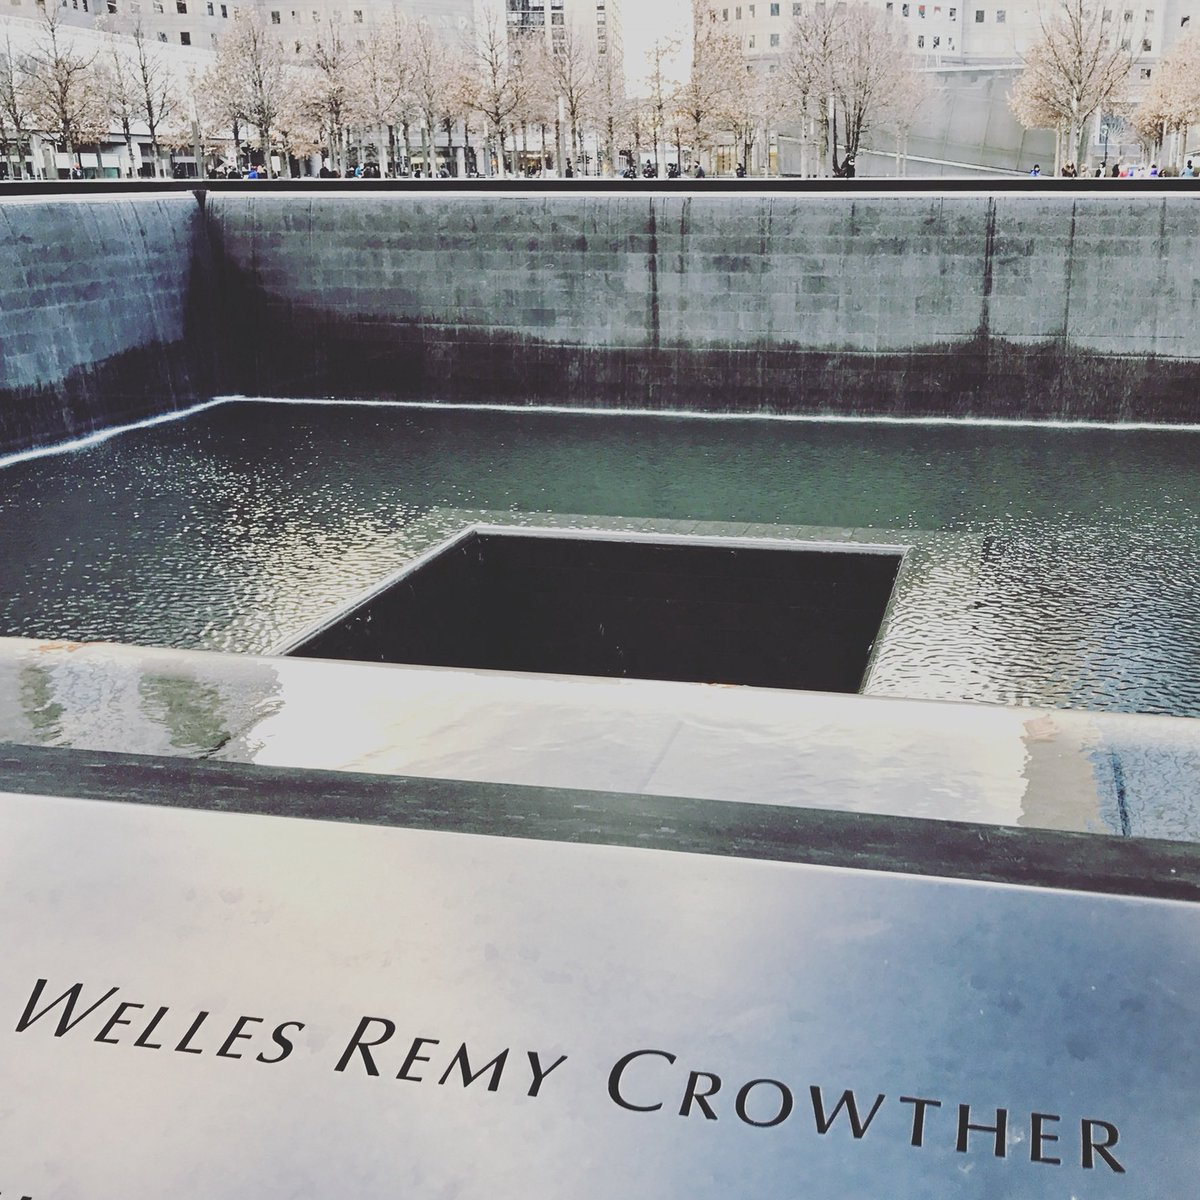 """It's been 18 years and I still get a pit in my stomach. I named my 5th child after Welles Crowther, """"The Man In the Red Bandanna"""". If he's even a fraction of the man Welles was, I'll be a proud mom. #NeverForget"""